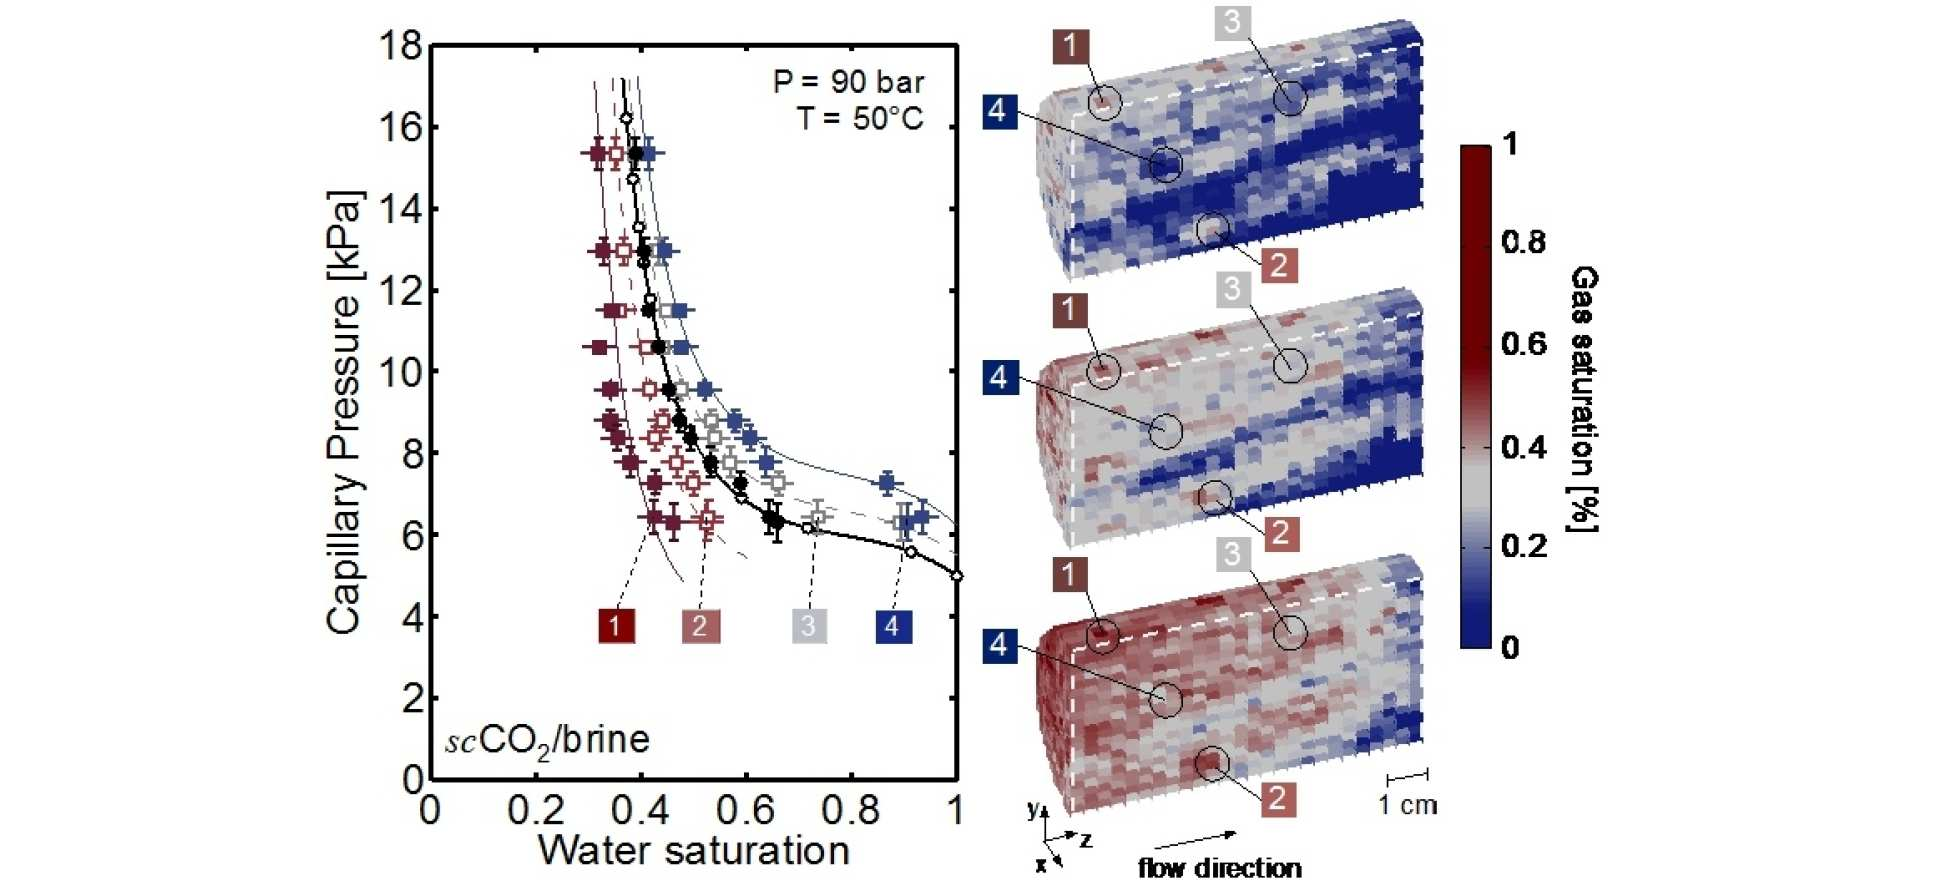 Quantification of capillary pressure (Pc) heterogeneity in a sandstone rock using non-invasive X-ray CT imaging to observe gas saturation distribution for ~10 mm3 voxels ( modified from: Pini R. and S. M. Benson (2015) Quantifying Hydrogeological Heterogeneity of Rocks using Core-Floods, in Pore Scale Phenomena: Frontiers in Energy and Environment. World Scientific, pp. 243-261.